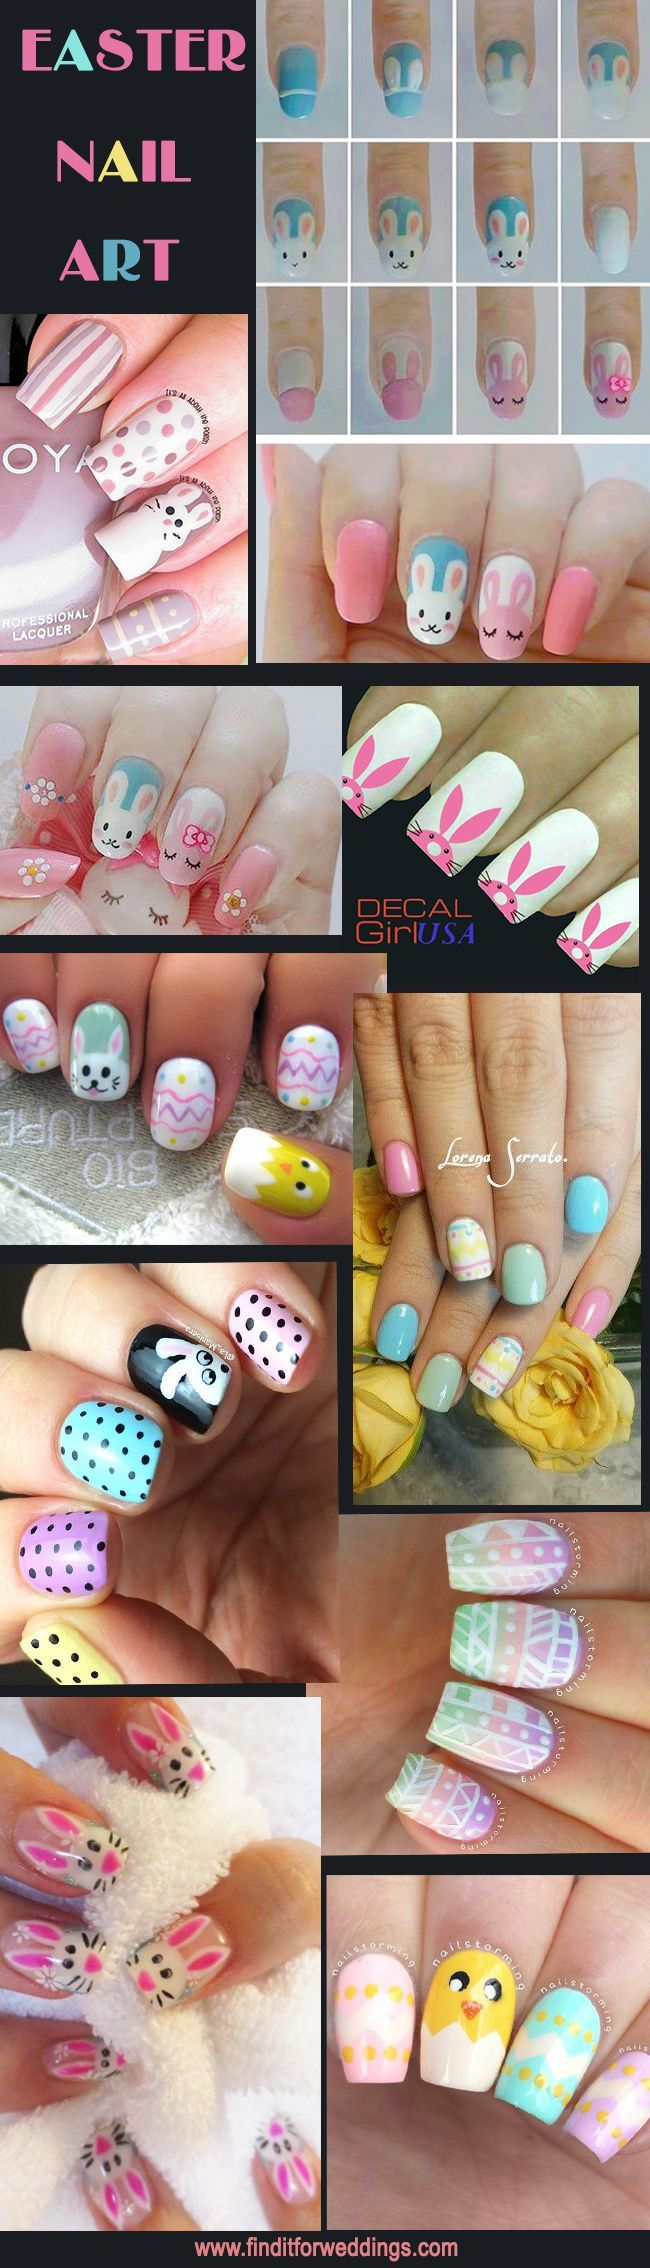 Easter Nails - Nail Art www.finditforweddings.com for wedding and fashion inspiration